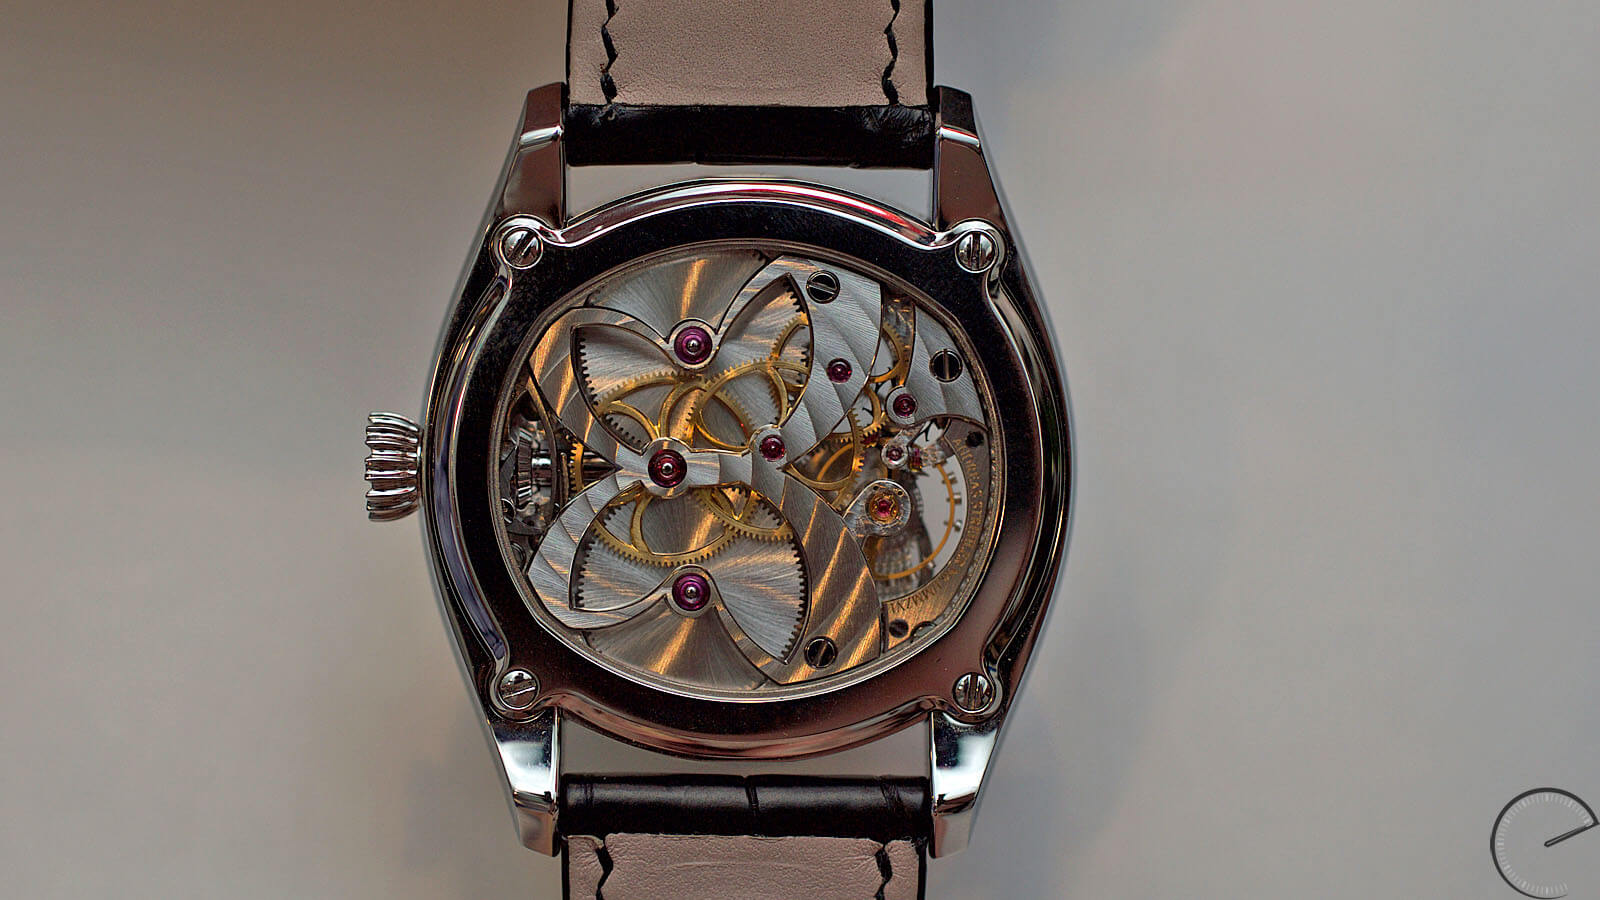 Image of hand wound movement within the Andreas Strehler Lune Exacte